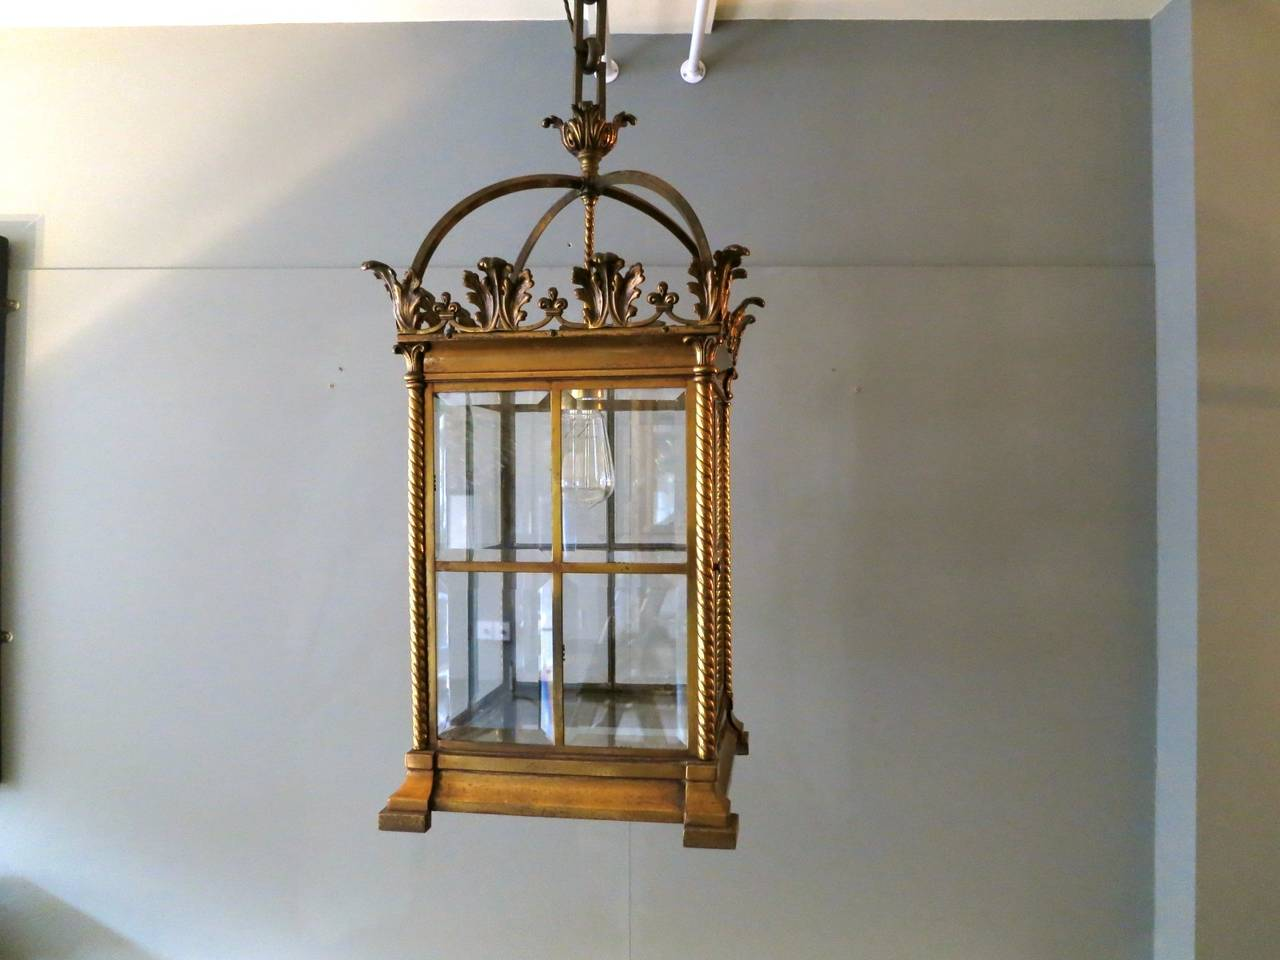 A 19th century period lantern in gilt brass, with Corinthian columns supporting an acanthus leaf decoration and bevelled glass panels.